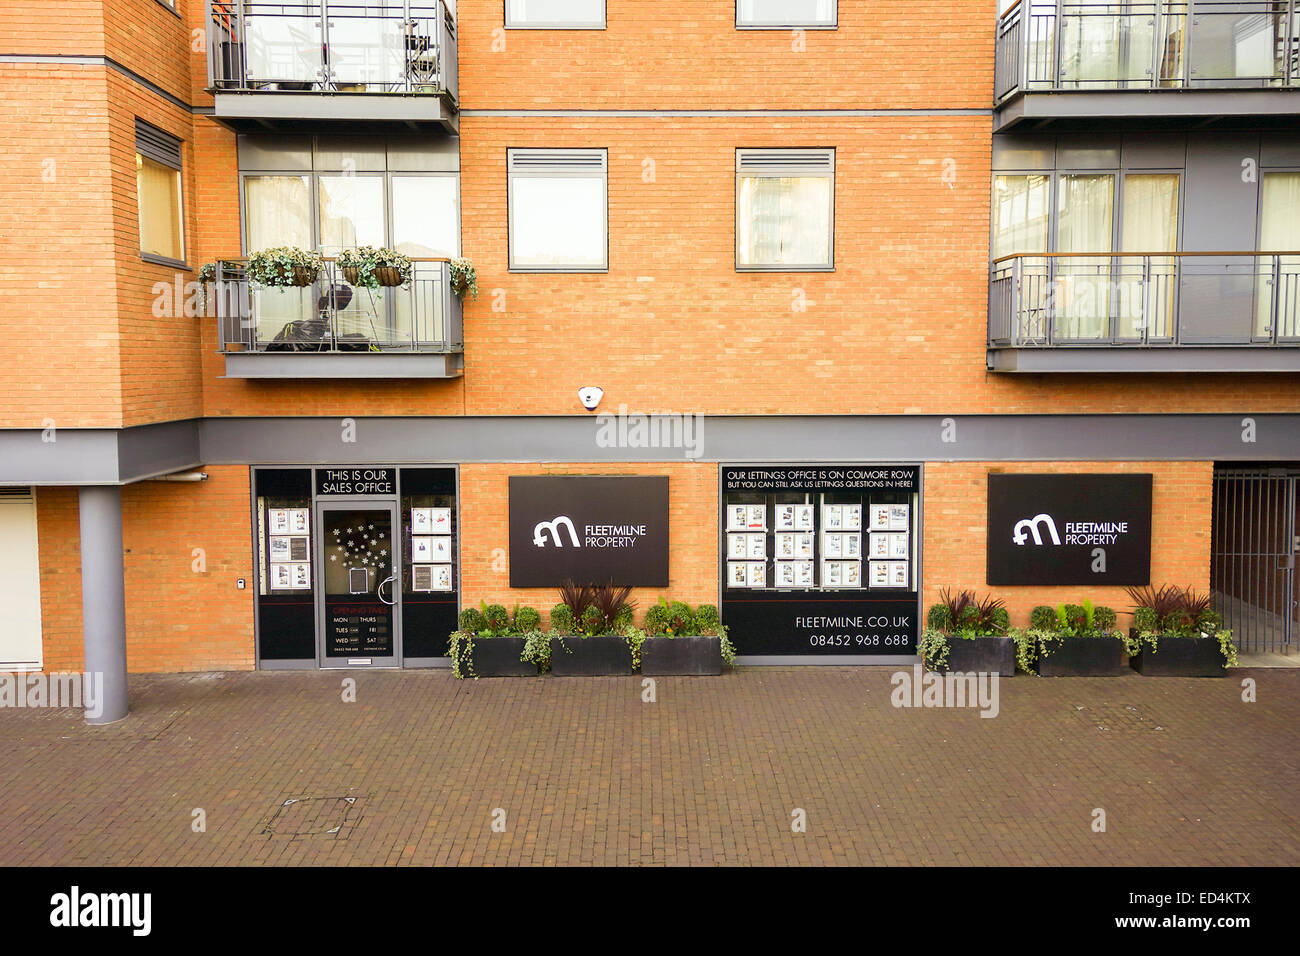 Birmingham City Centre estate agent and property letting office - Stock Image